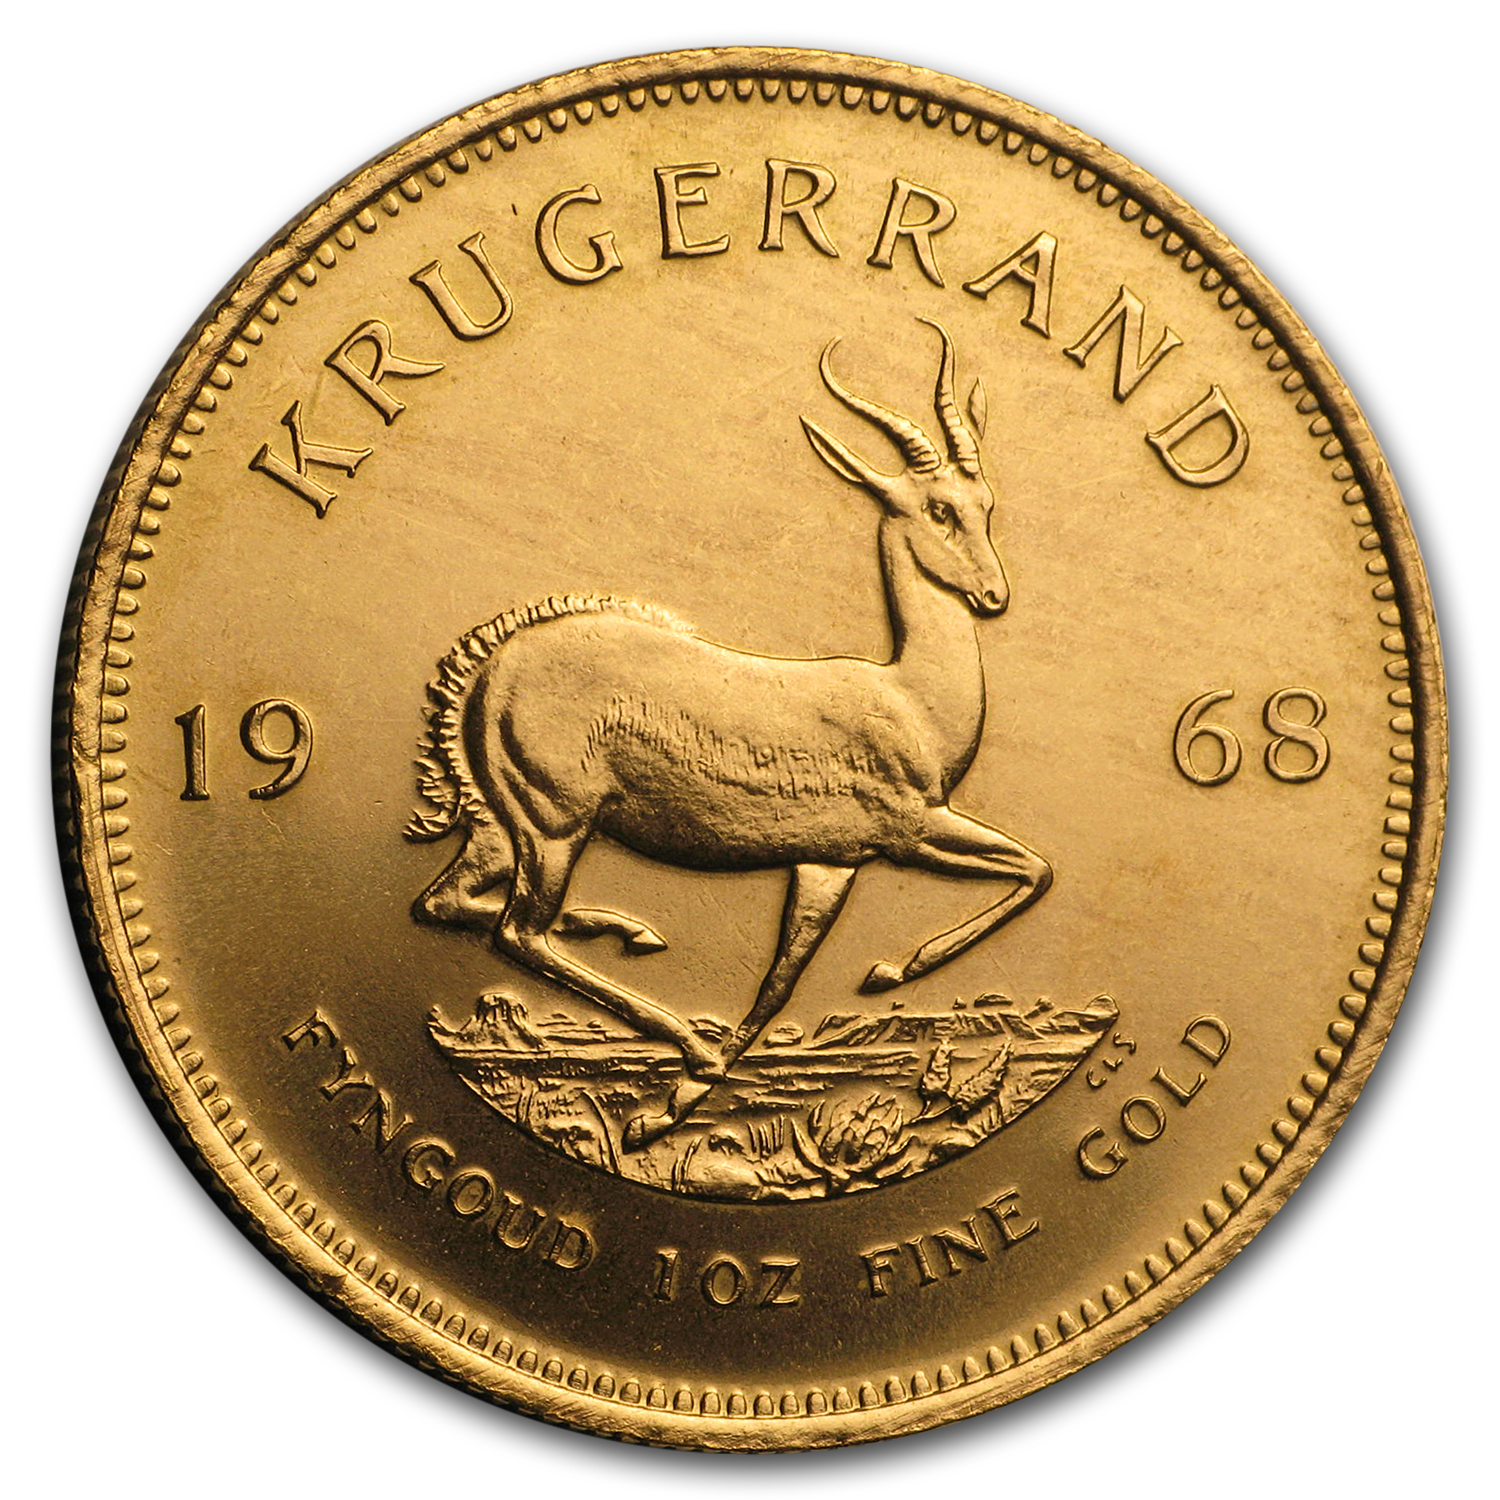 1968 South Africa 1 oz Gold Krugerrand